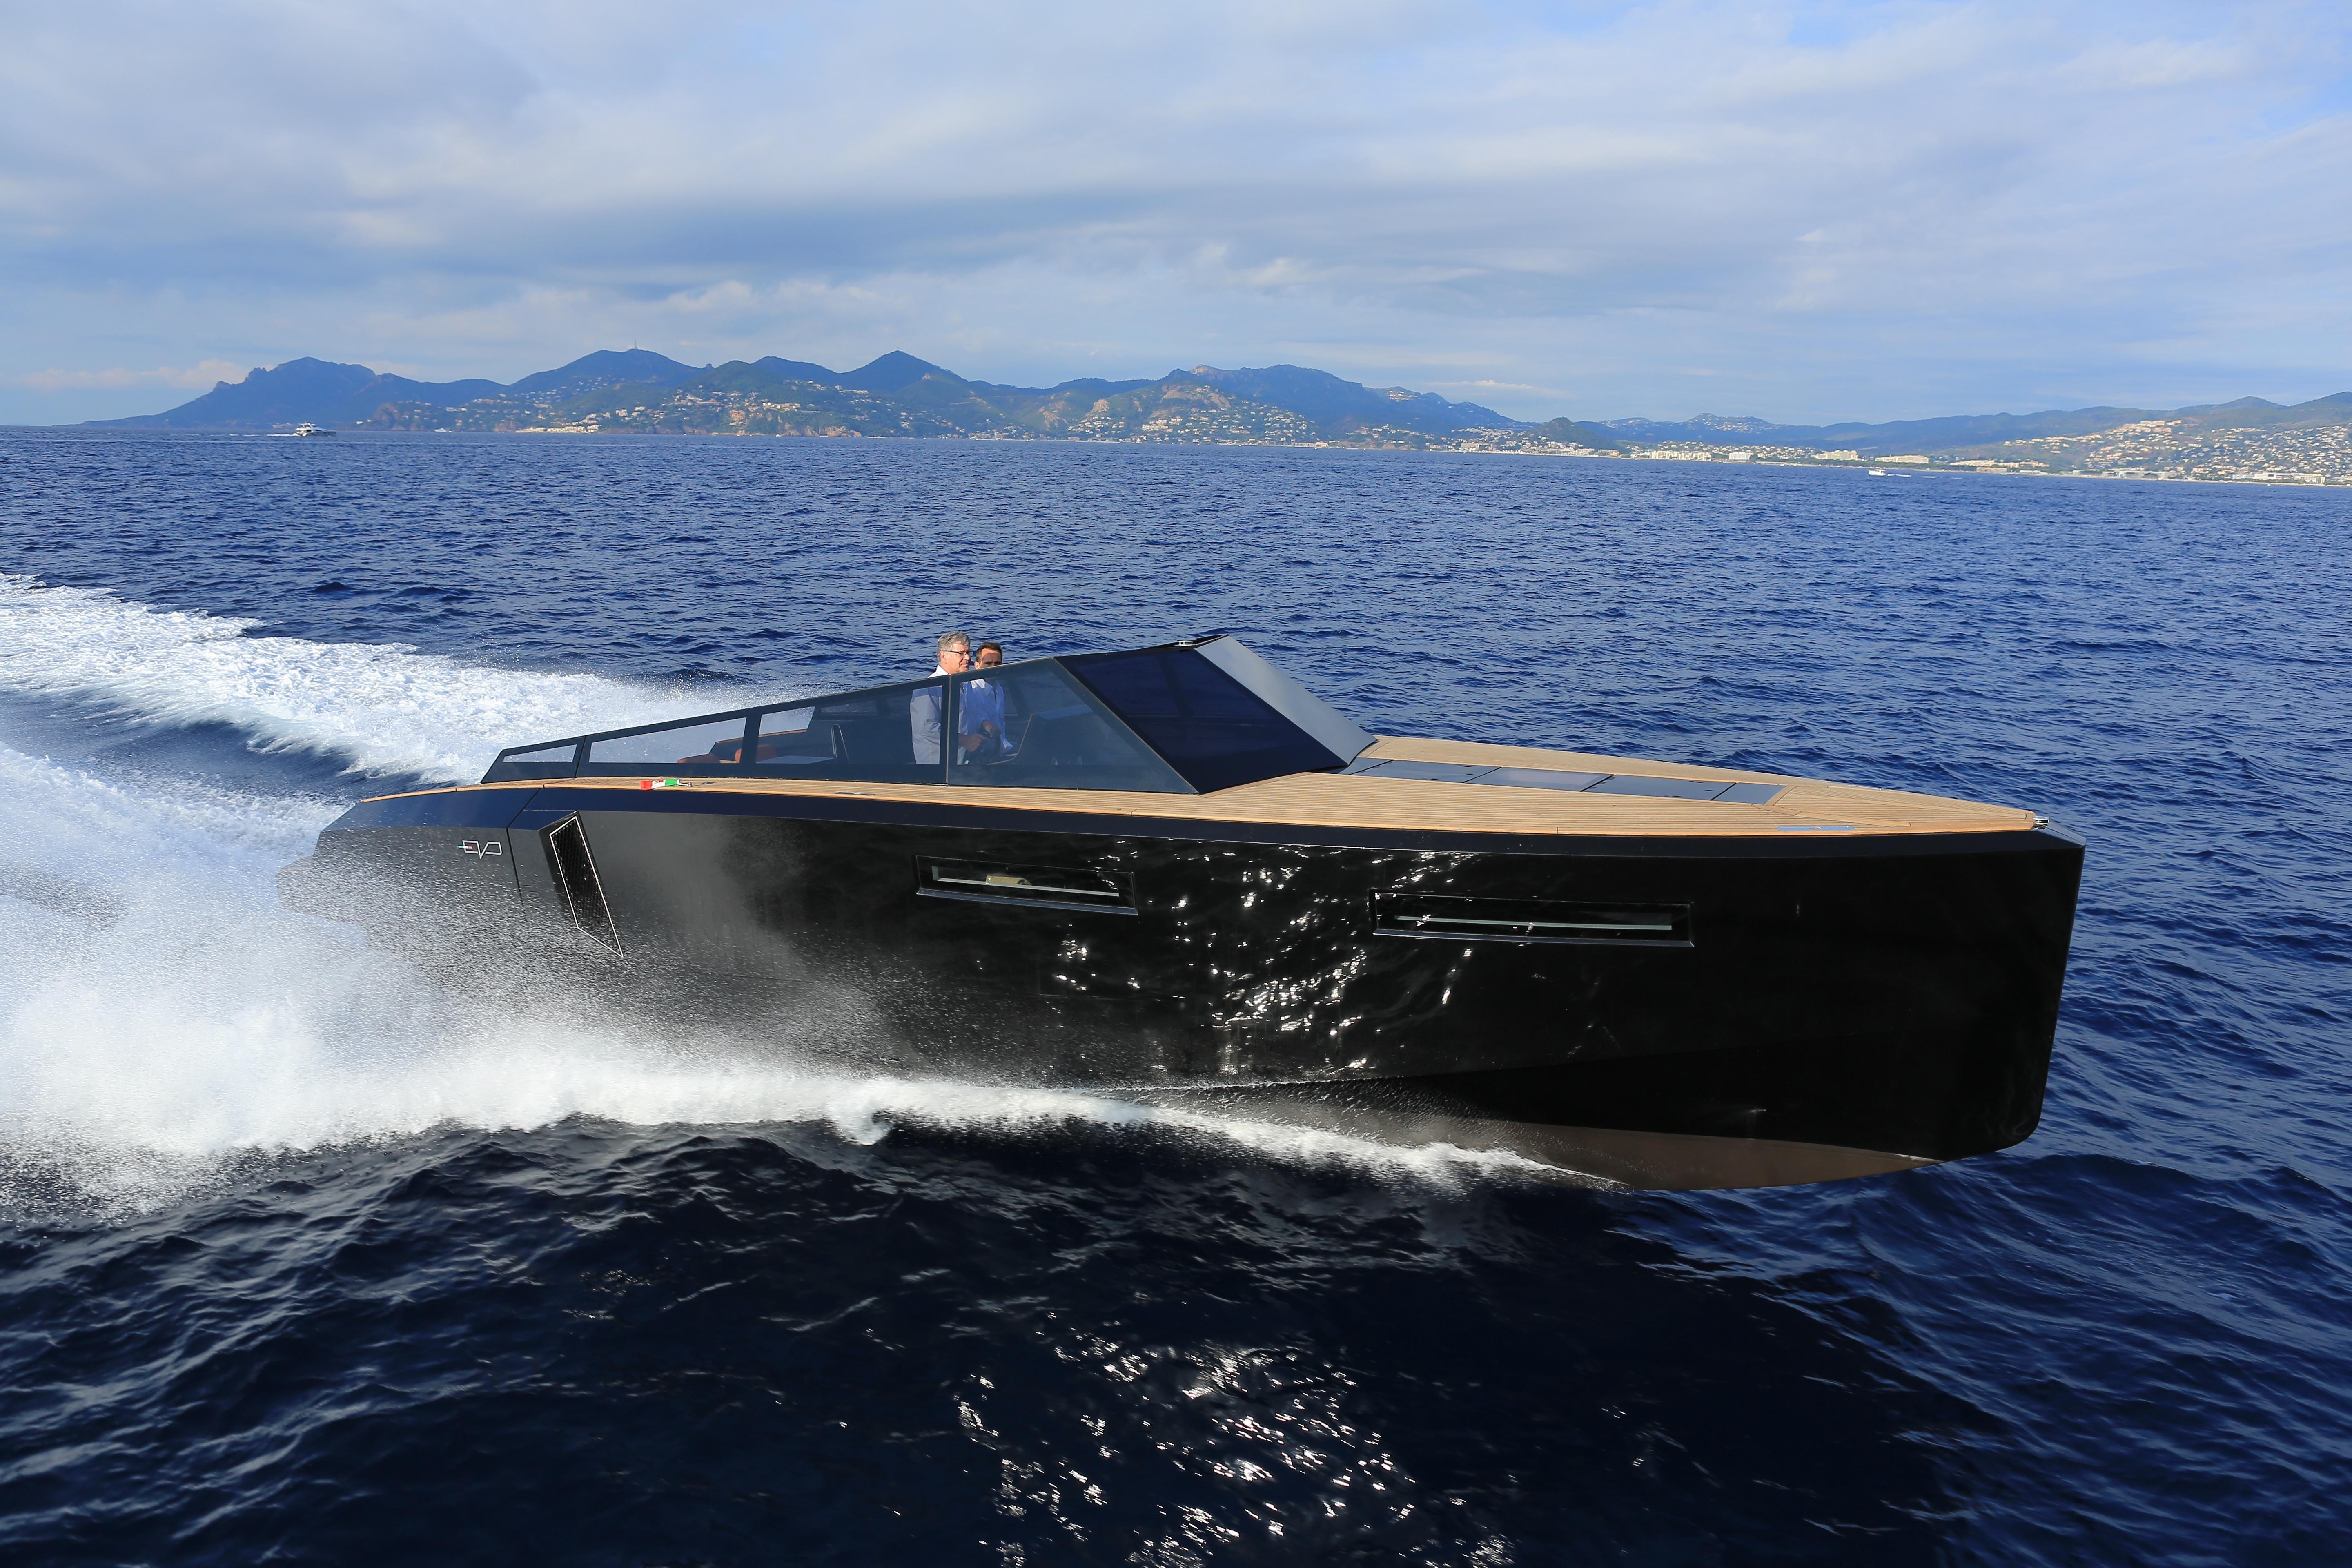 The Boat Is Built In Composite Material - Resin-infused Fiberglass - That Allows Accurate Control Of Thickness And Weight, Thus A 20% Gain In Displacement Compared To Boats Of The Same Type And Length And With The Same Engines